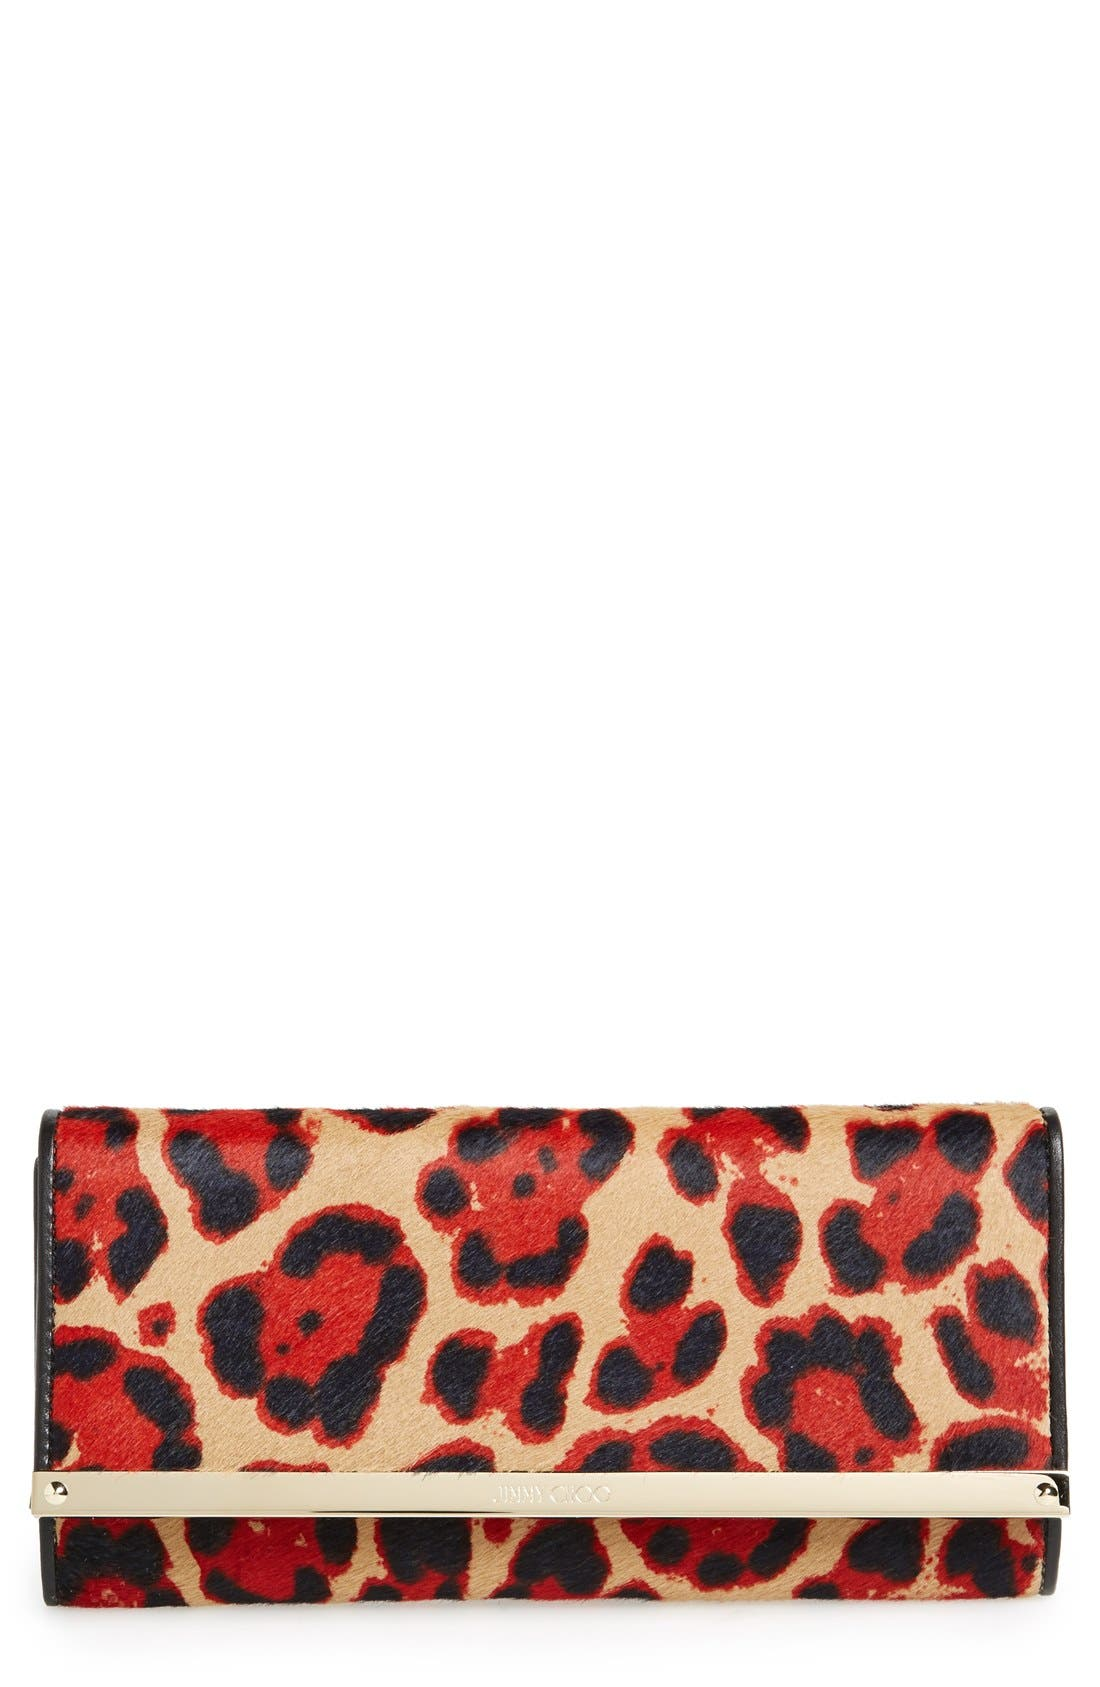 Alternate Image 1 Selected - Jimmy Choo 'Milla' Genuine Calf Hair Wallet on a Chain